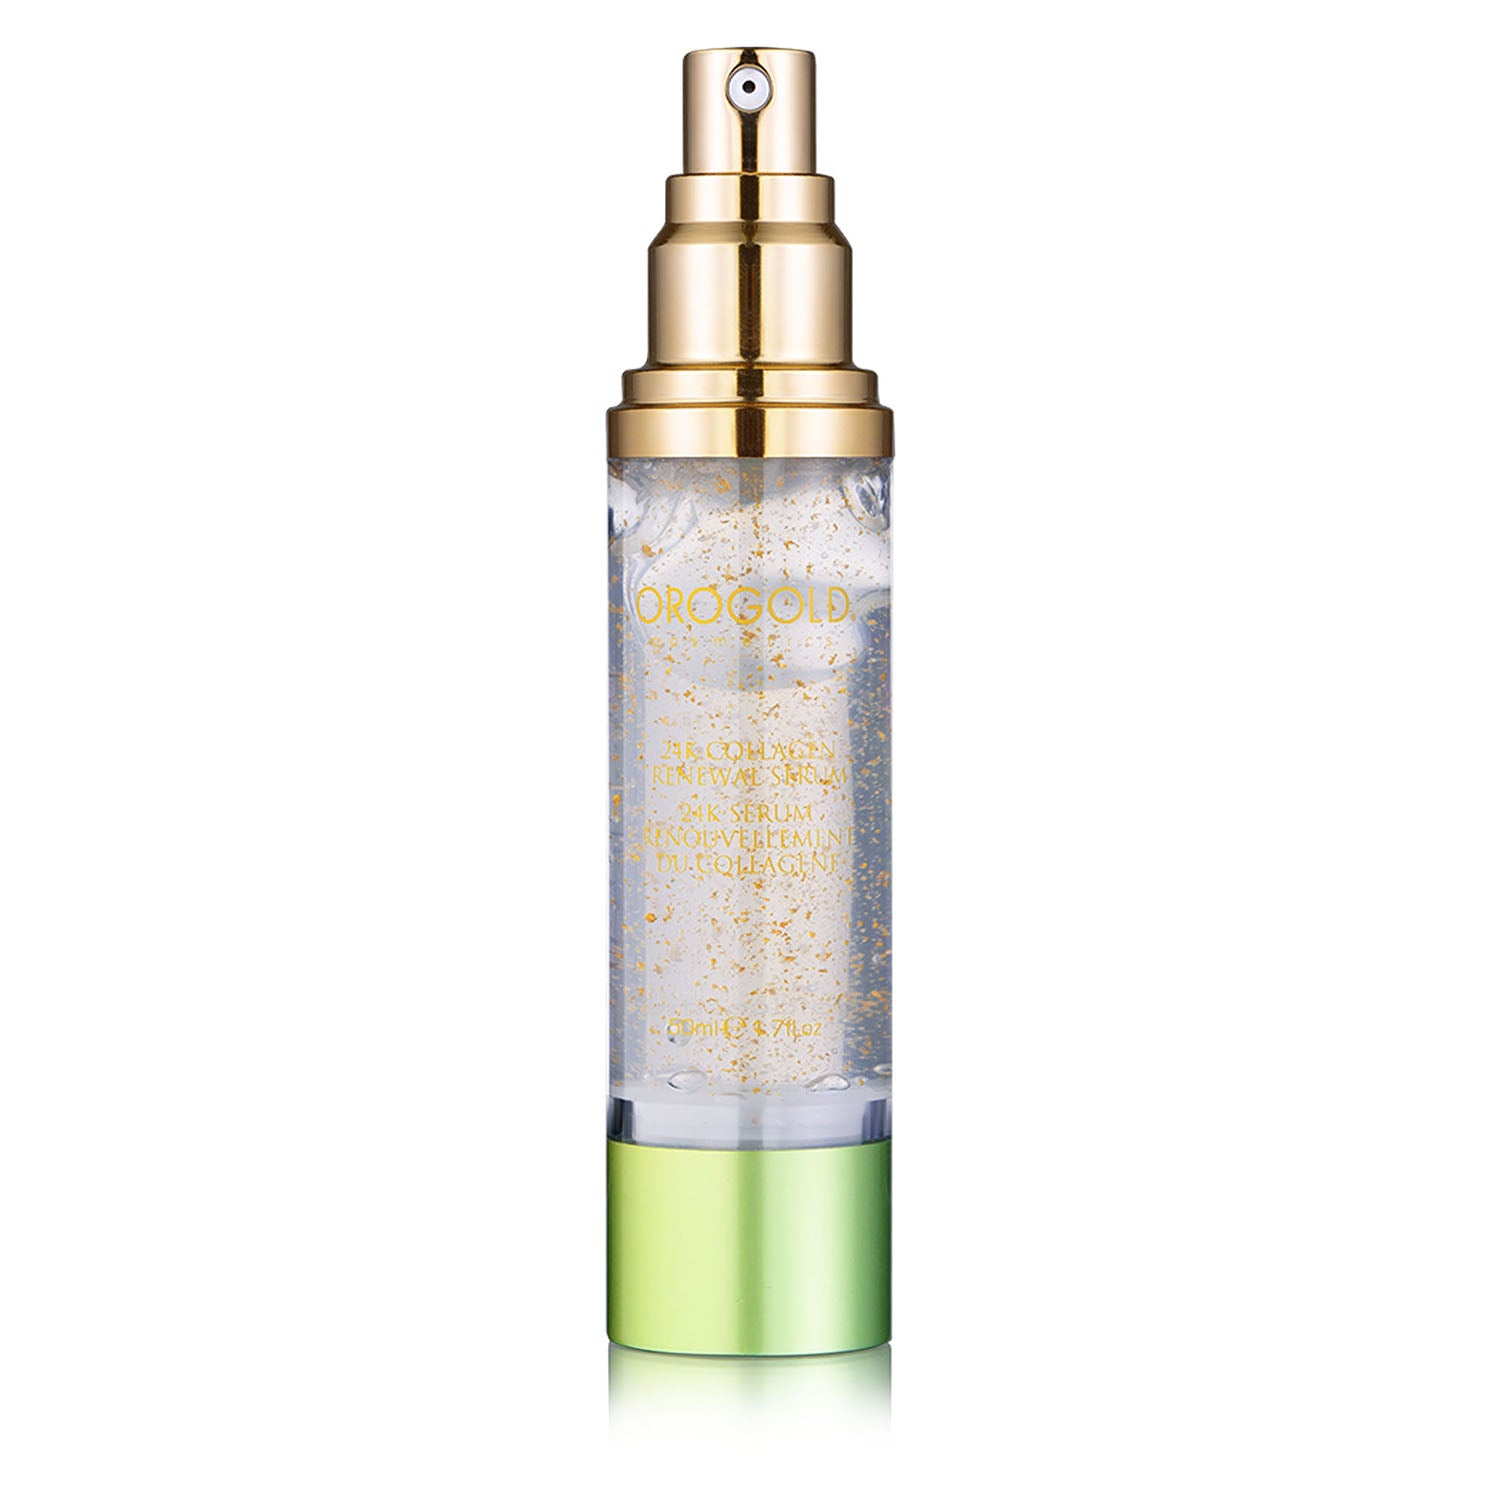 orogold collagen face serum